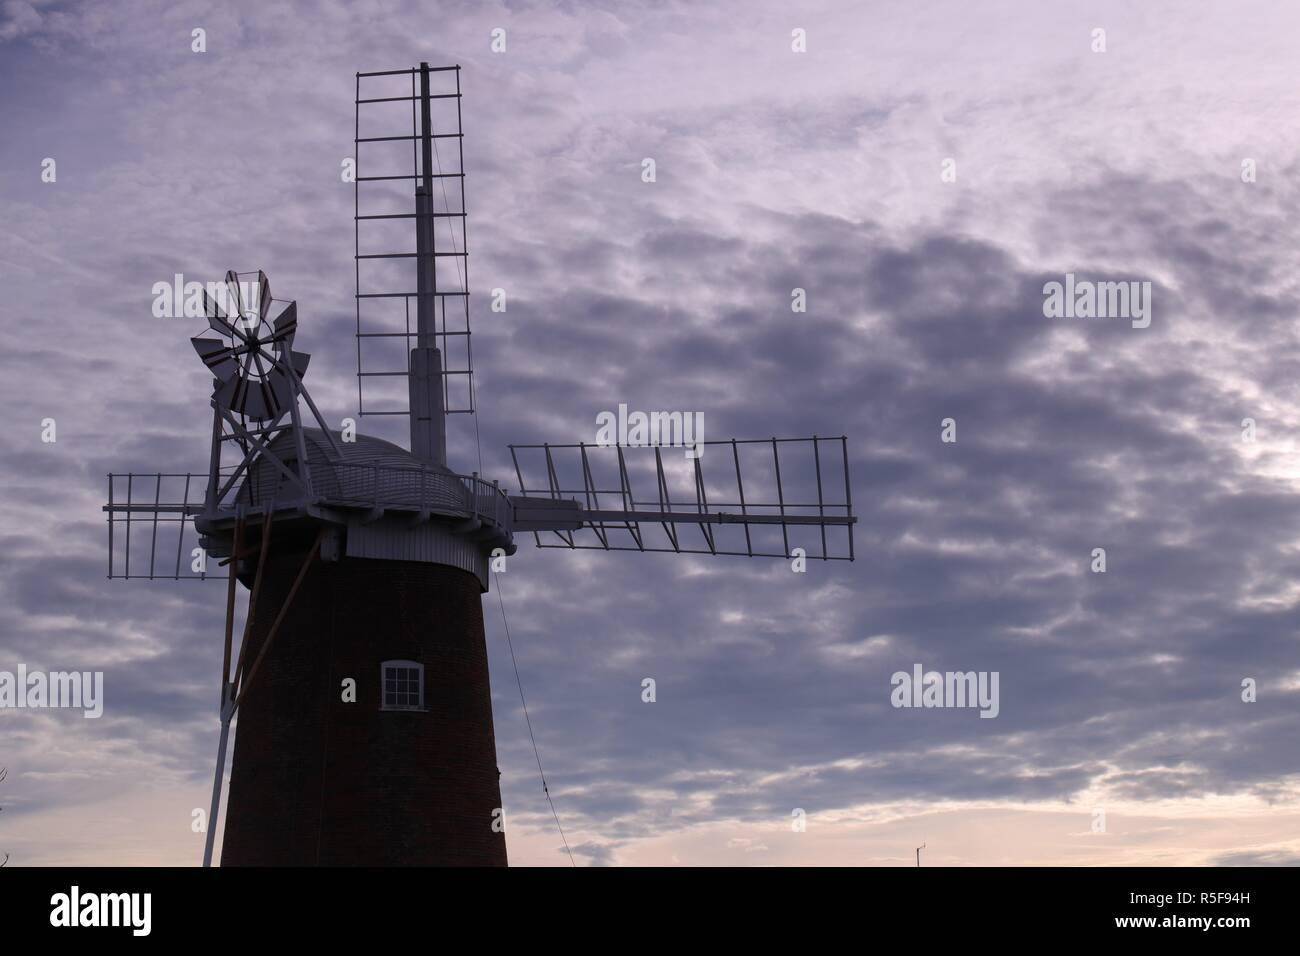 A solitary wind pump on the Norfolk Broads national park in the UK - Stock Image